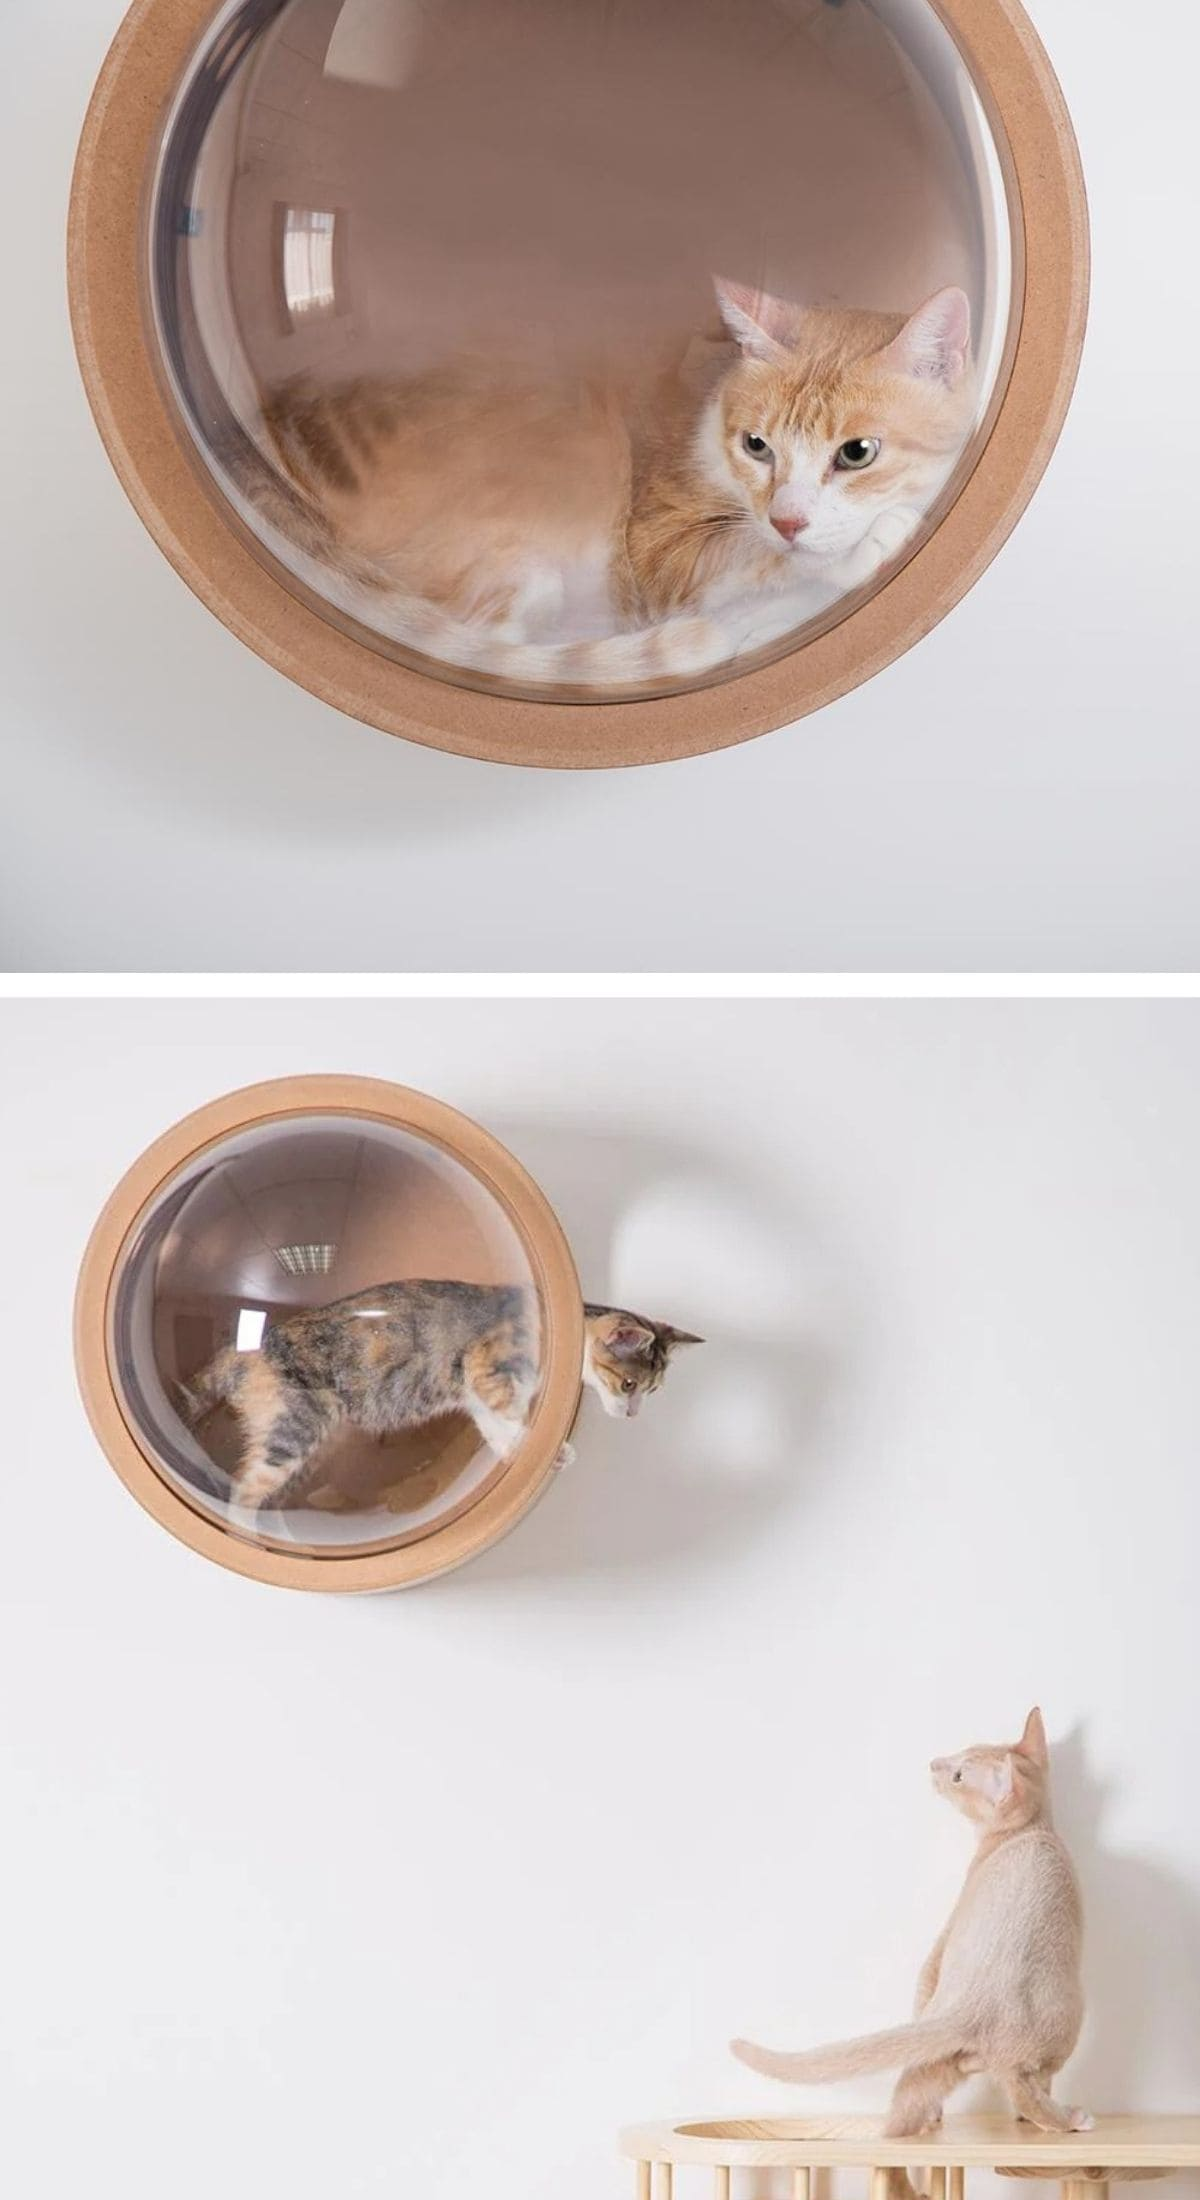 pet furniture 21 - 18 amazing pet furniture ideas that are perfect solutions for small spaces